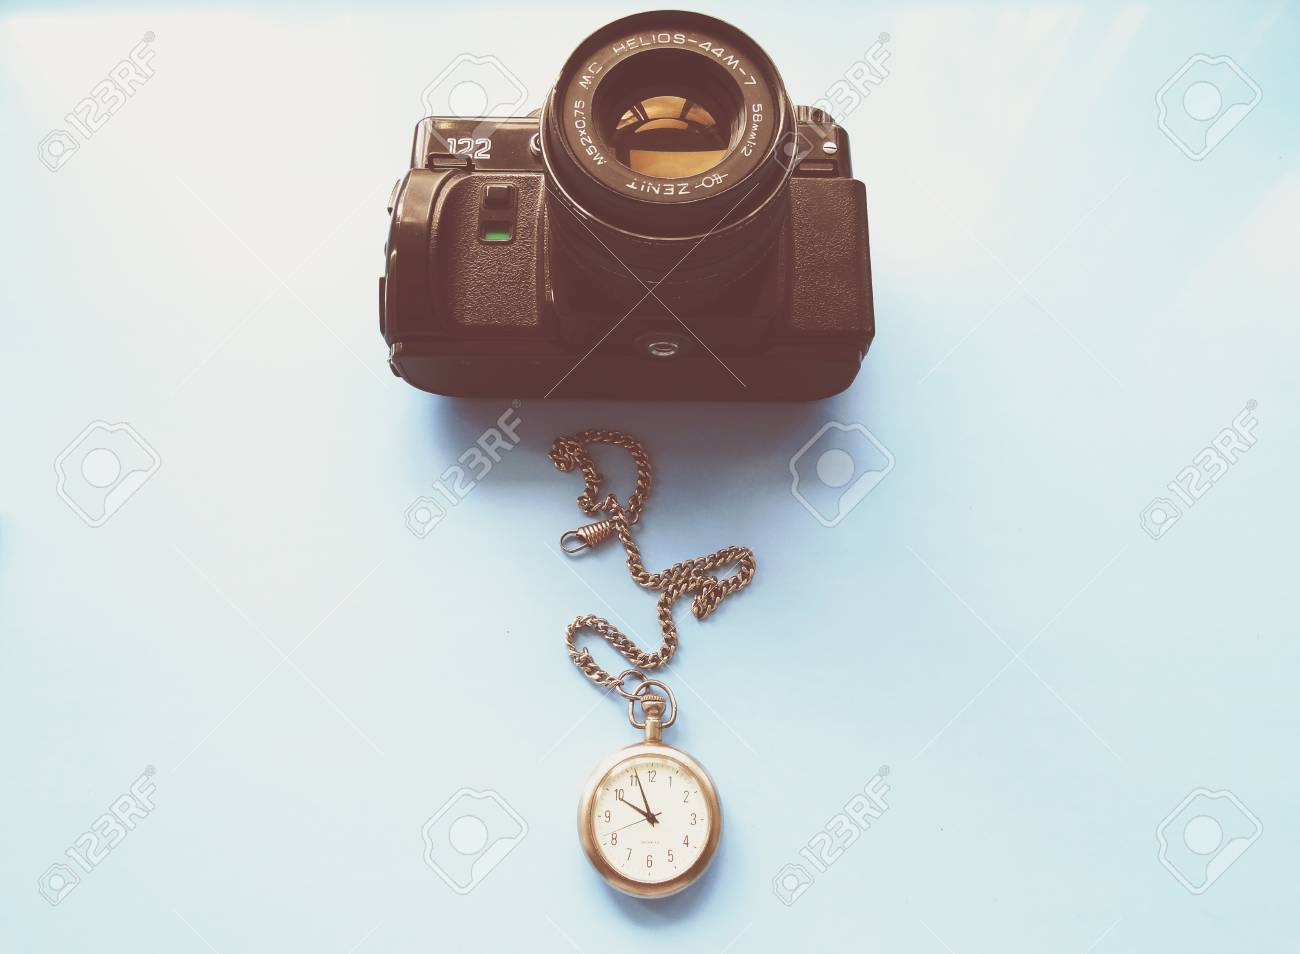 Old Camera Zenith Vintage Style Retro Background Wallpaper 1300x954